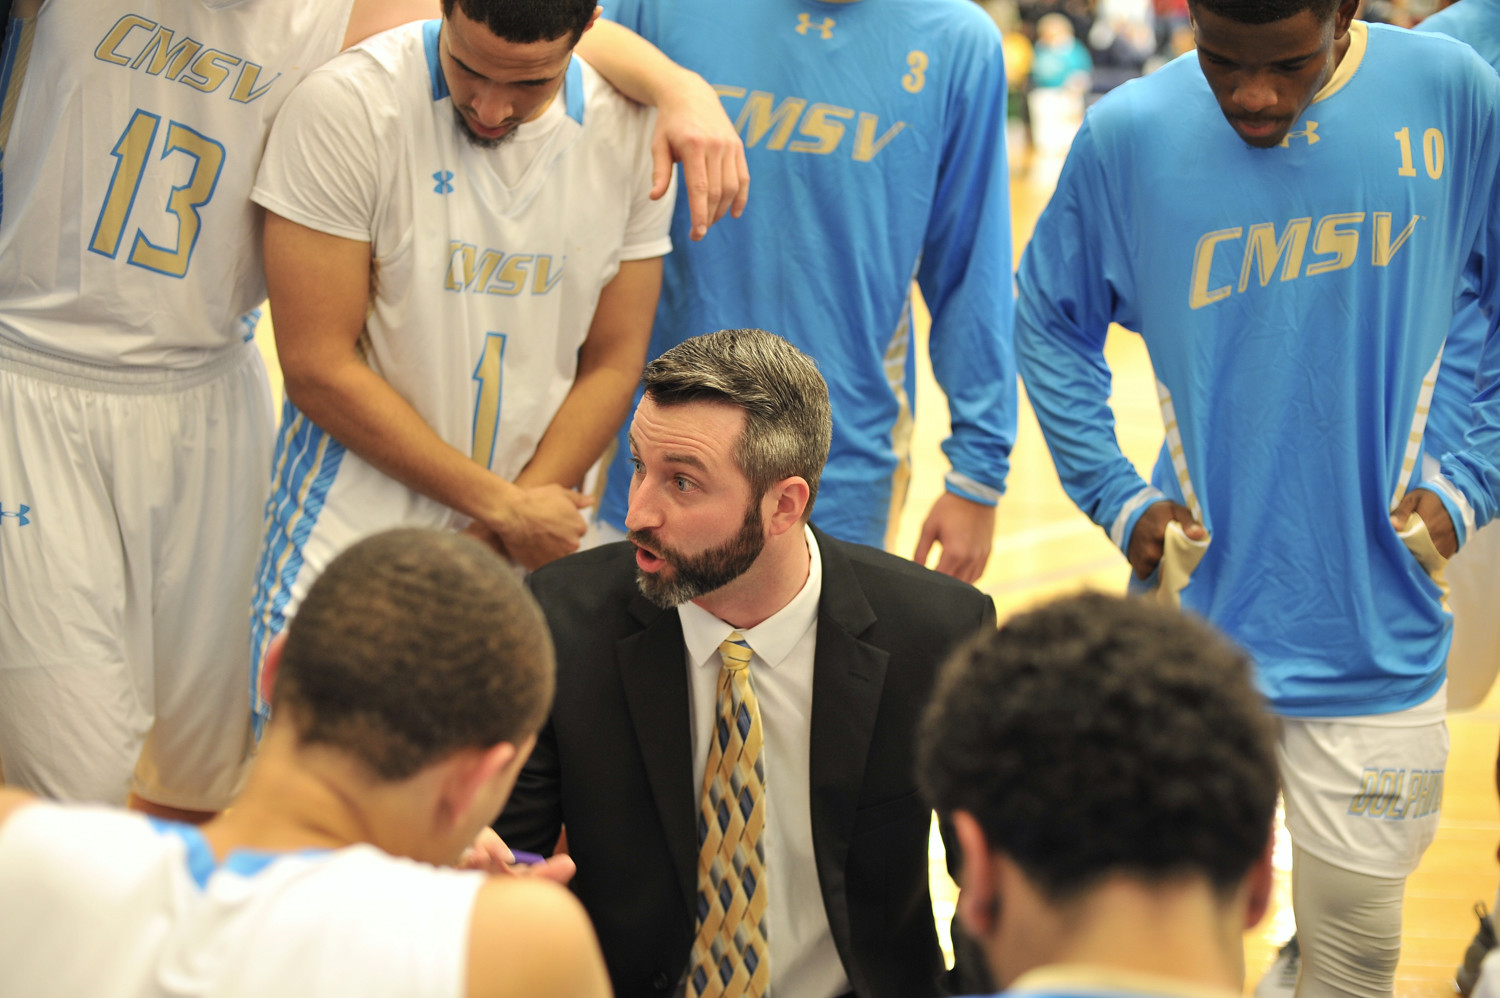 The College of Mount Saint Vincent enjoyed a remarkable turnaround under first-year head coach James Mooney. But the Dolphins' season came to an end in the Skyline Conference tournament semifinals last week against Purchase.